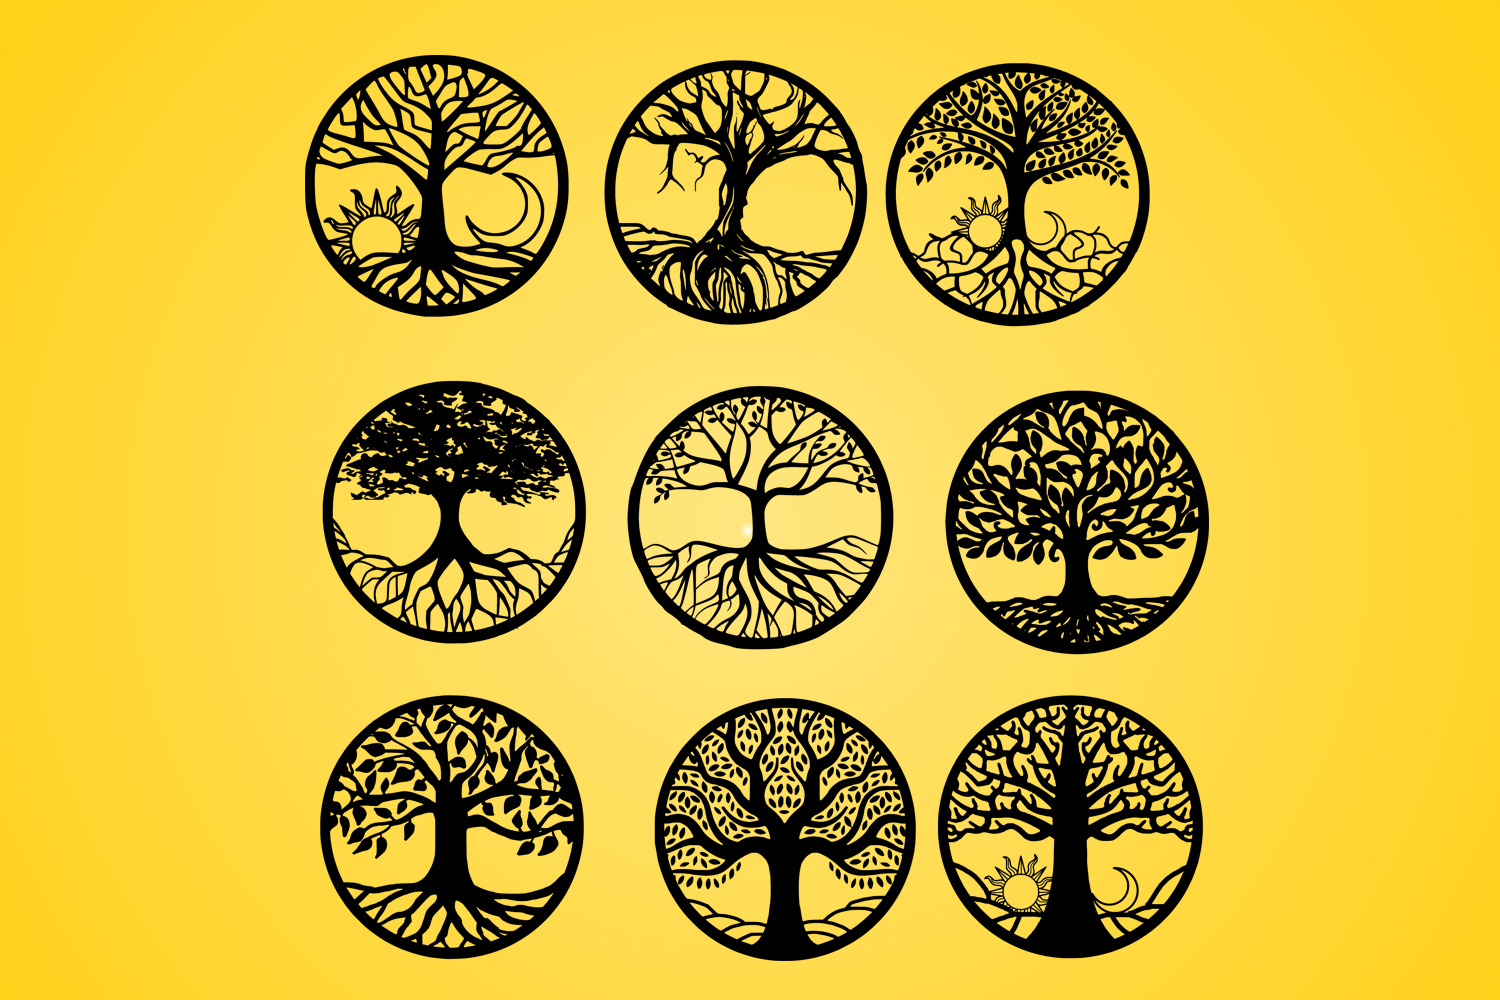 Download Free Tree Life Of Tree Vector Silhouette Graphic By Johanruartist for Cricut Explore, Silhouette and other cutting machines.